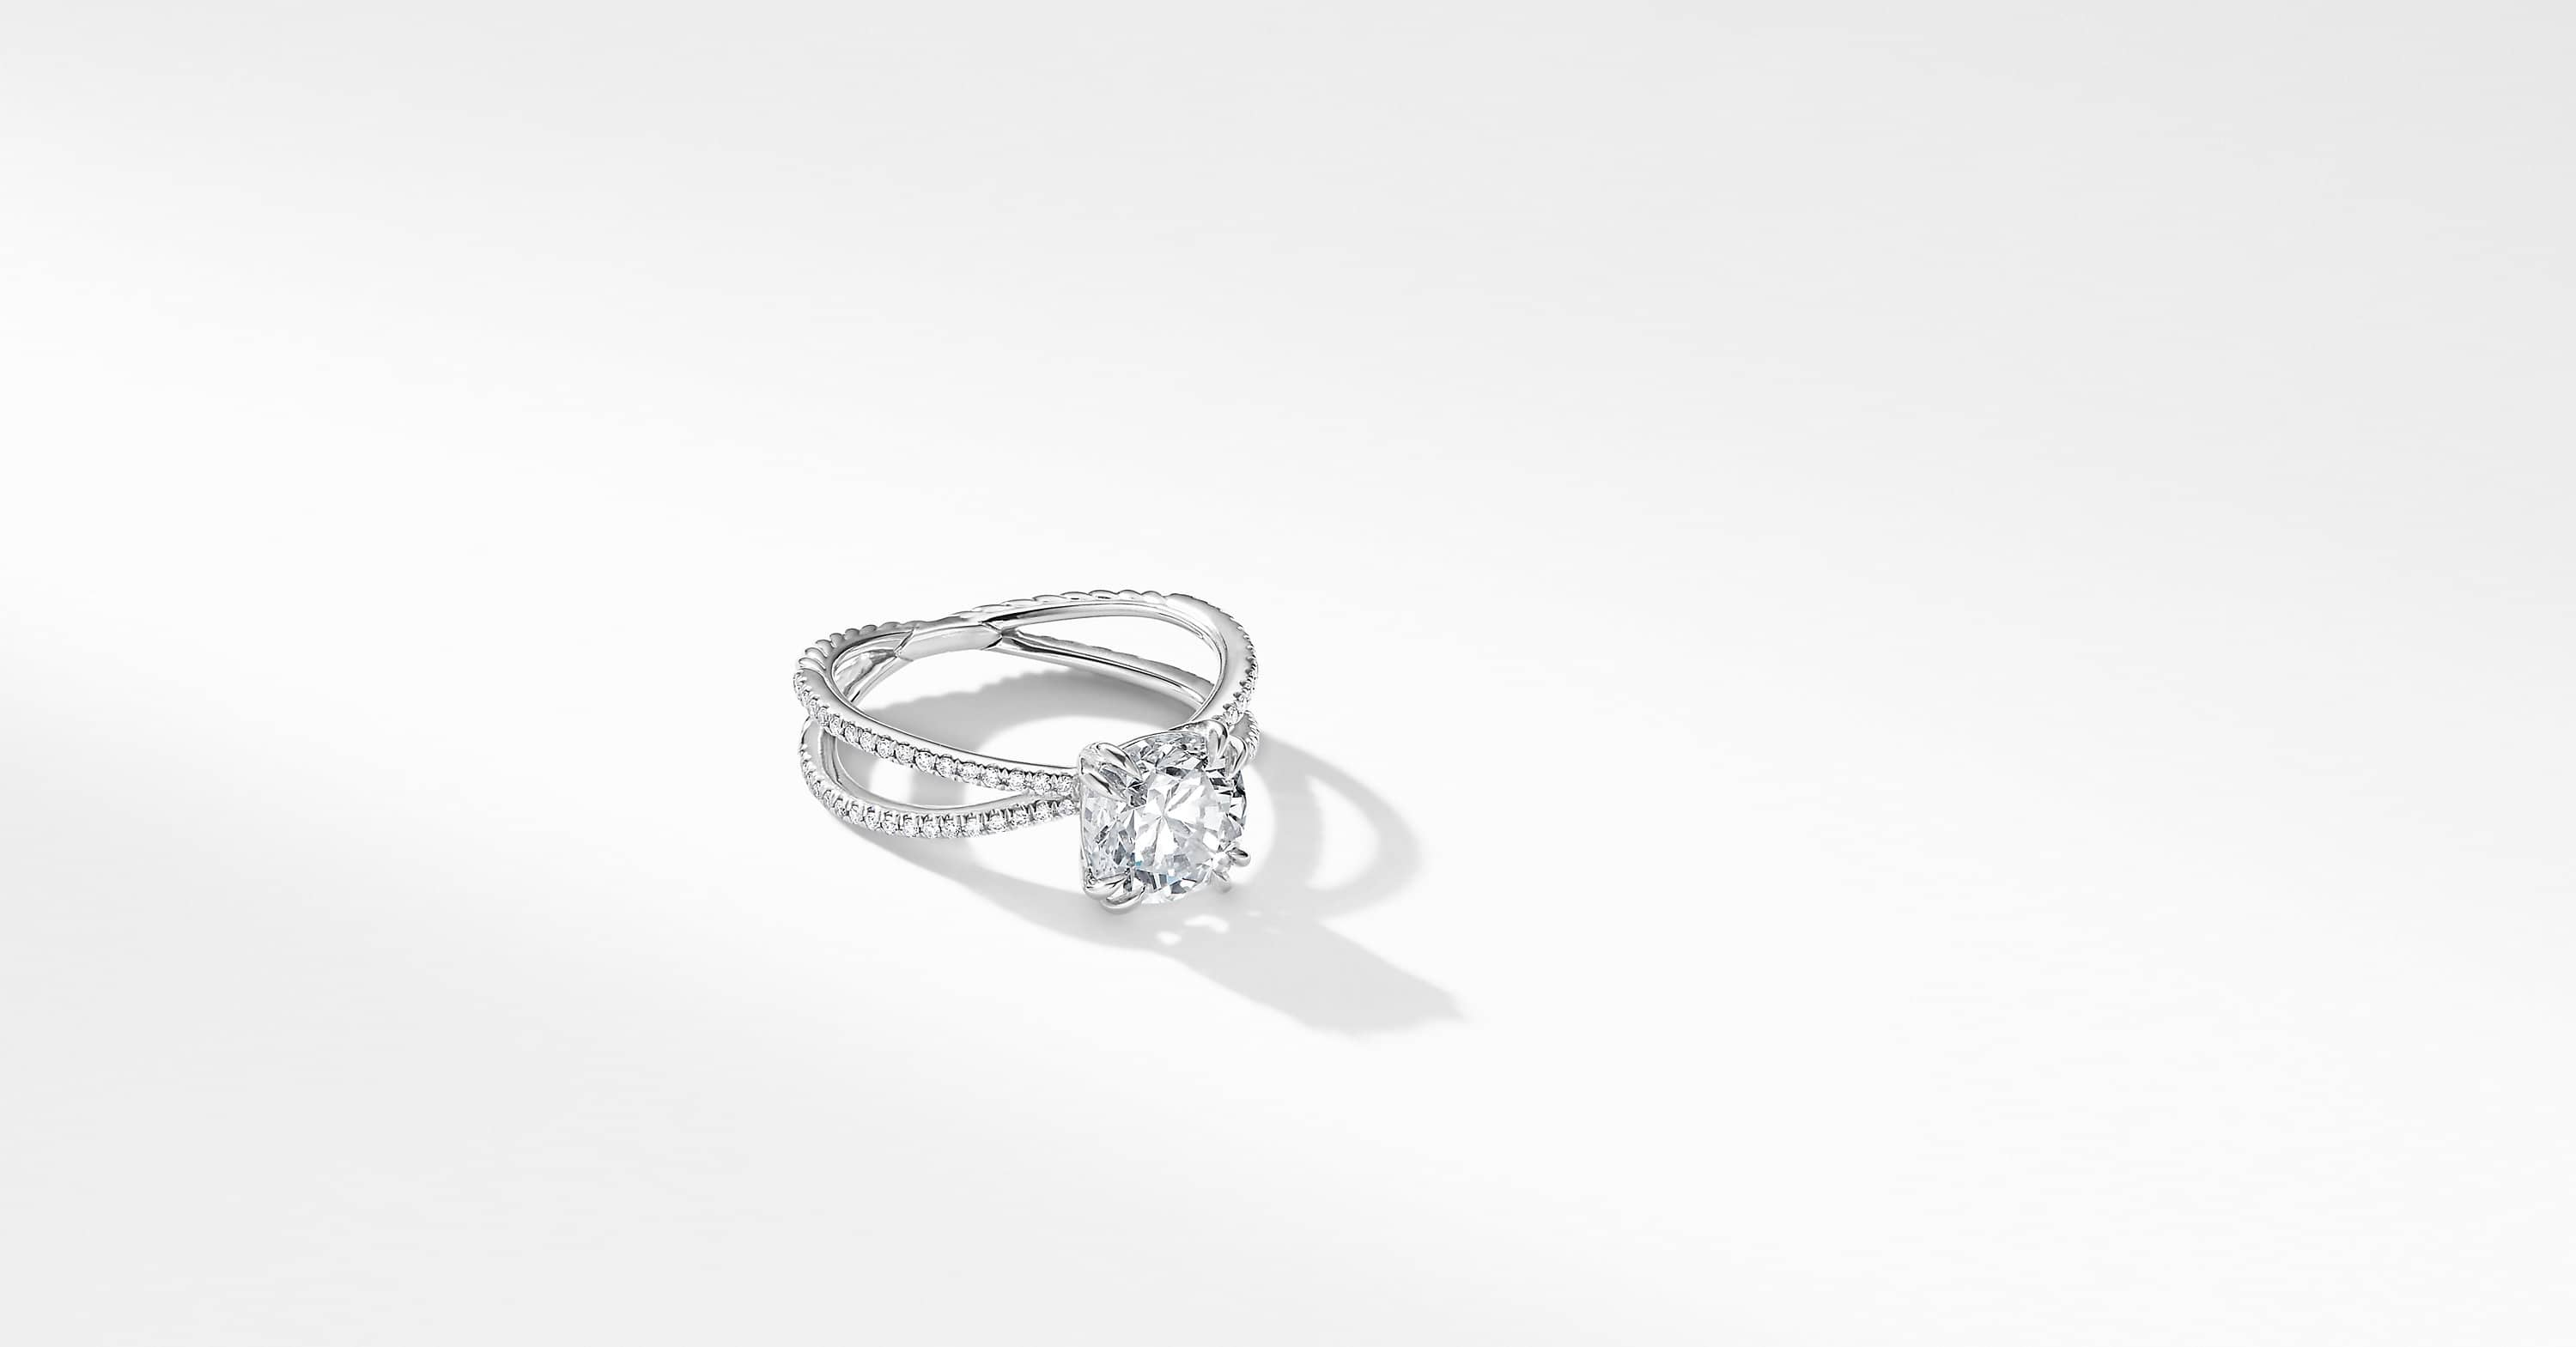 DY Crossover Micro Pave Engagement Ring in Platinum, Cushion